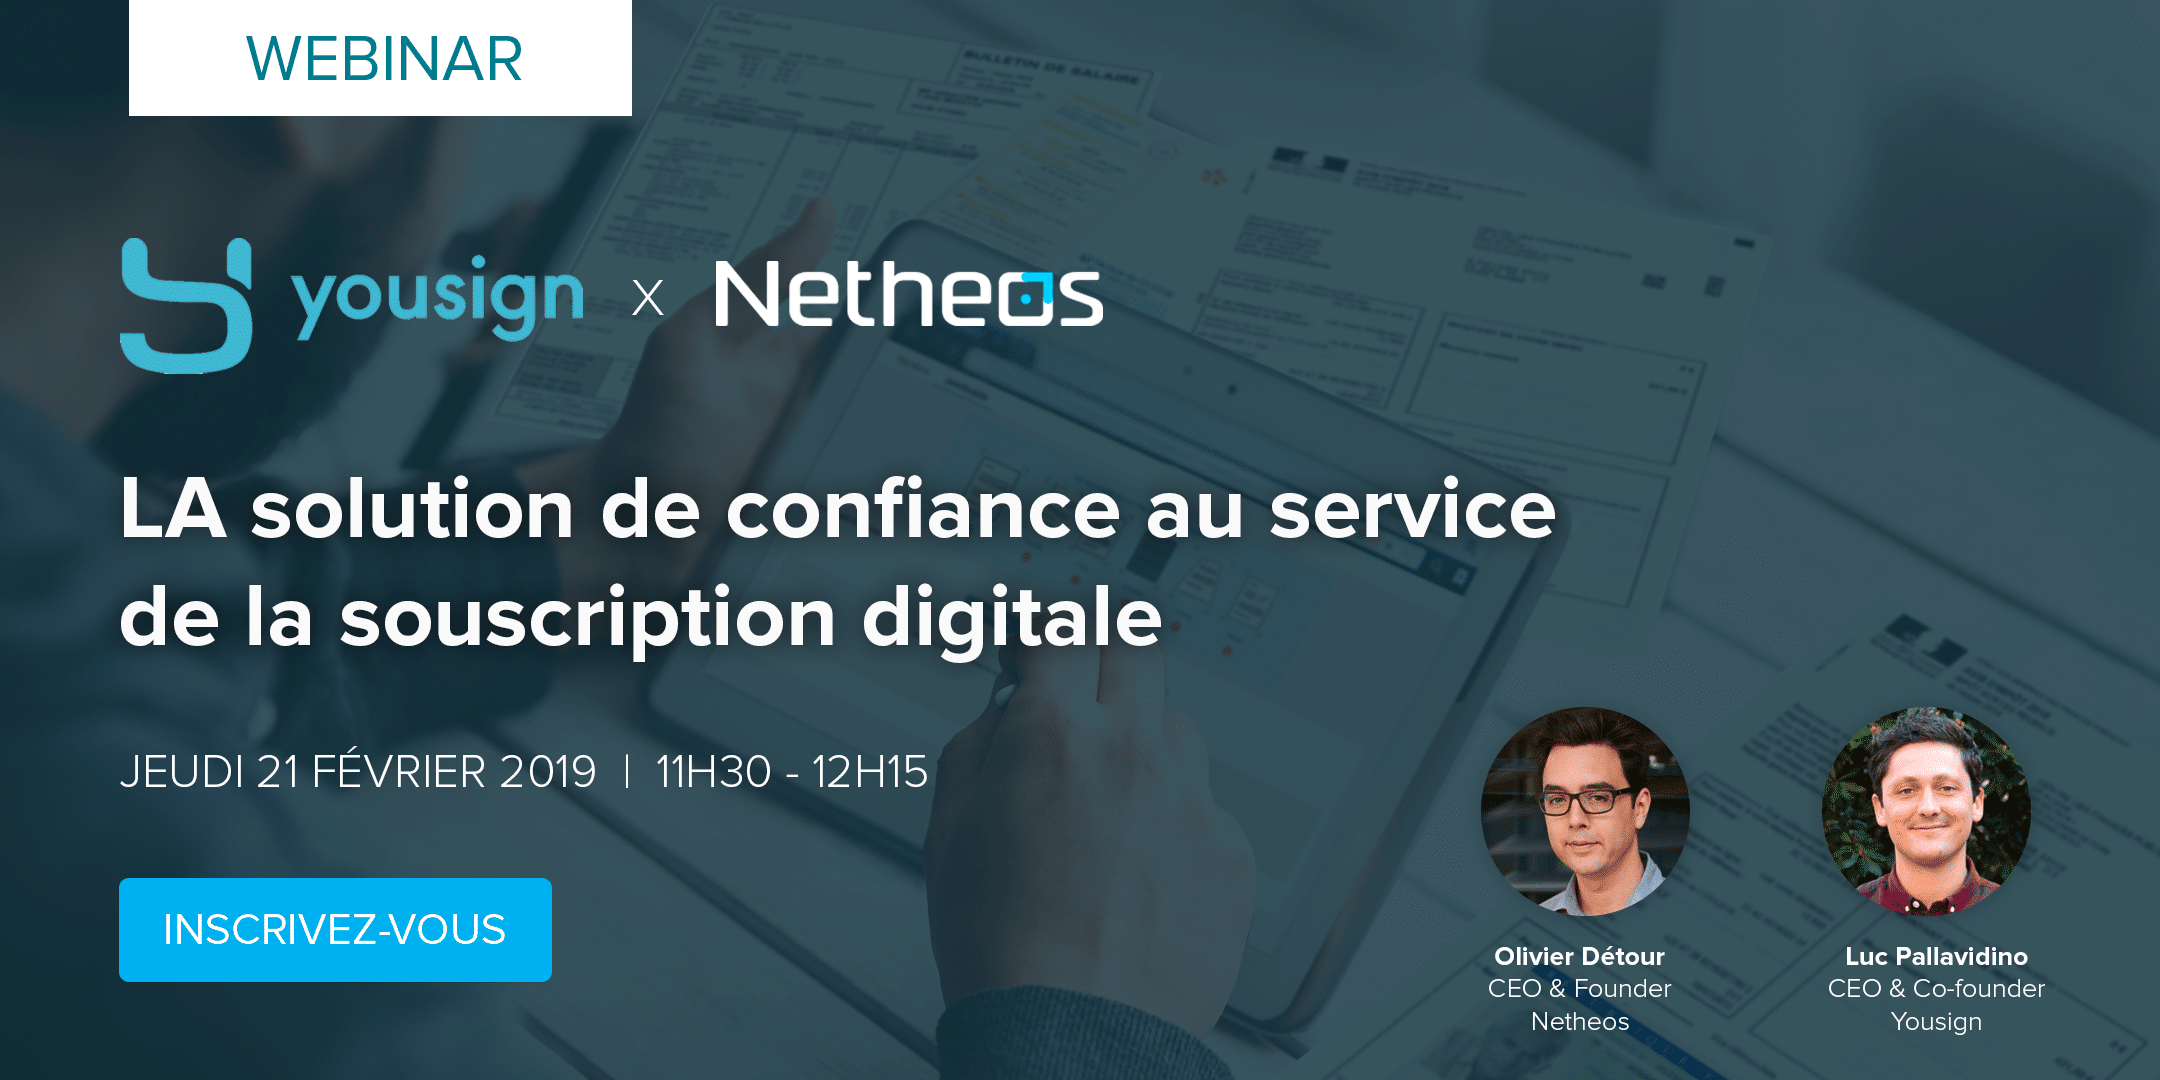 Webinar Yousign Netheos confiance digitale souscription